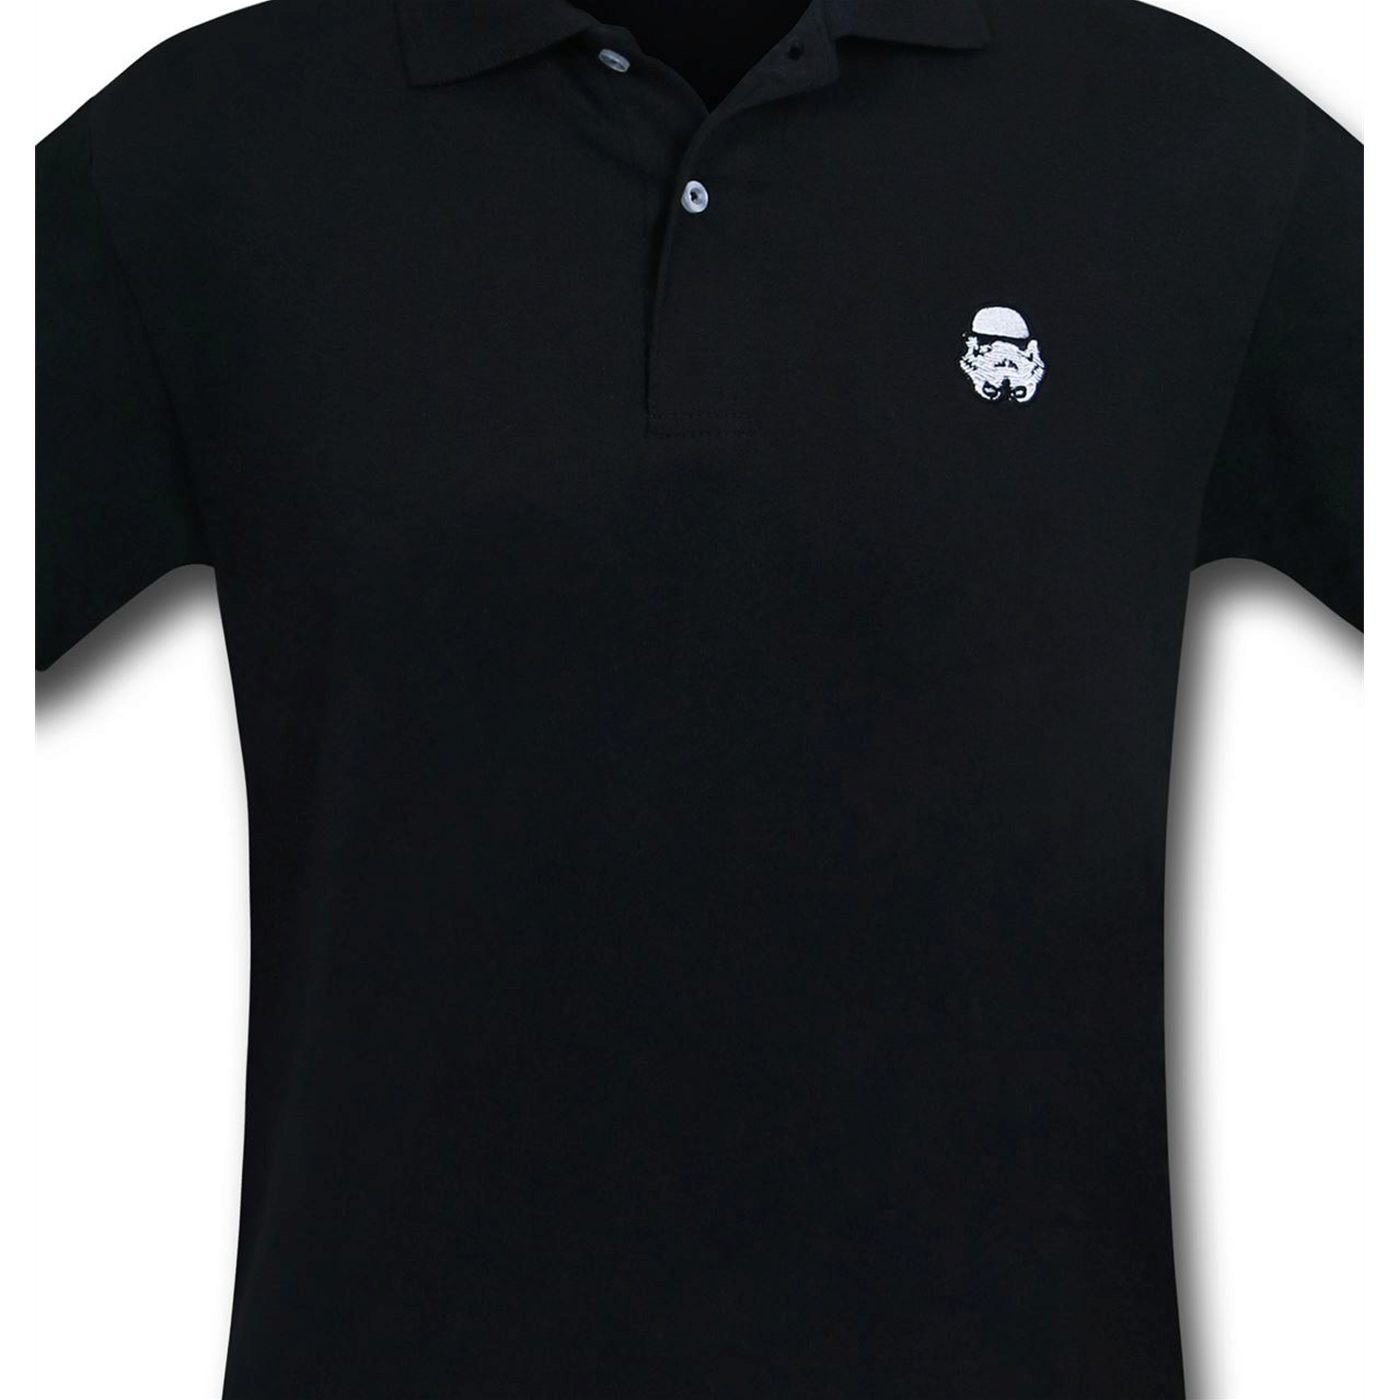 Star Wars Stormtrooper Black Polo Shirt